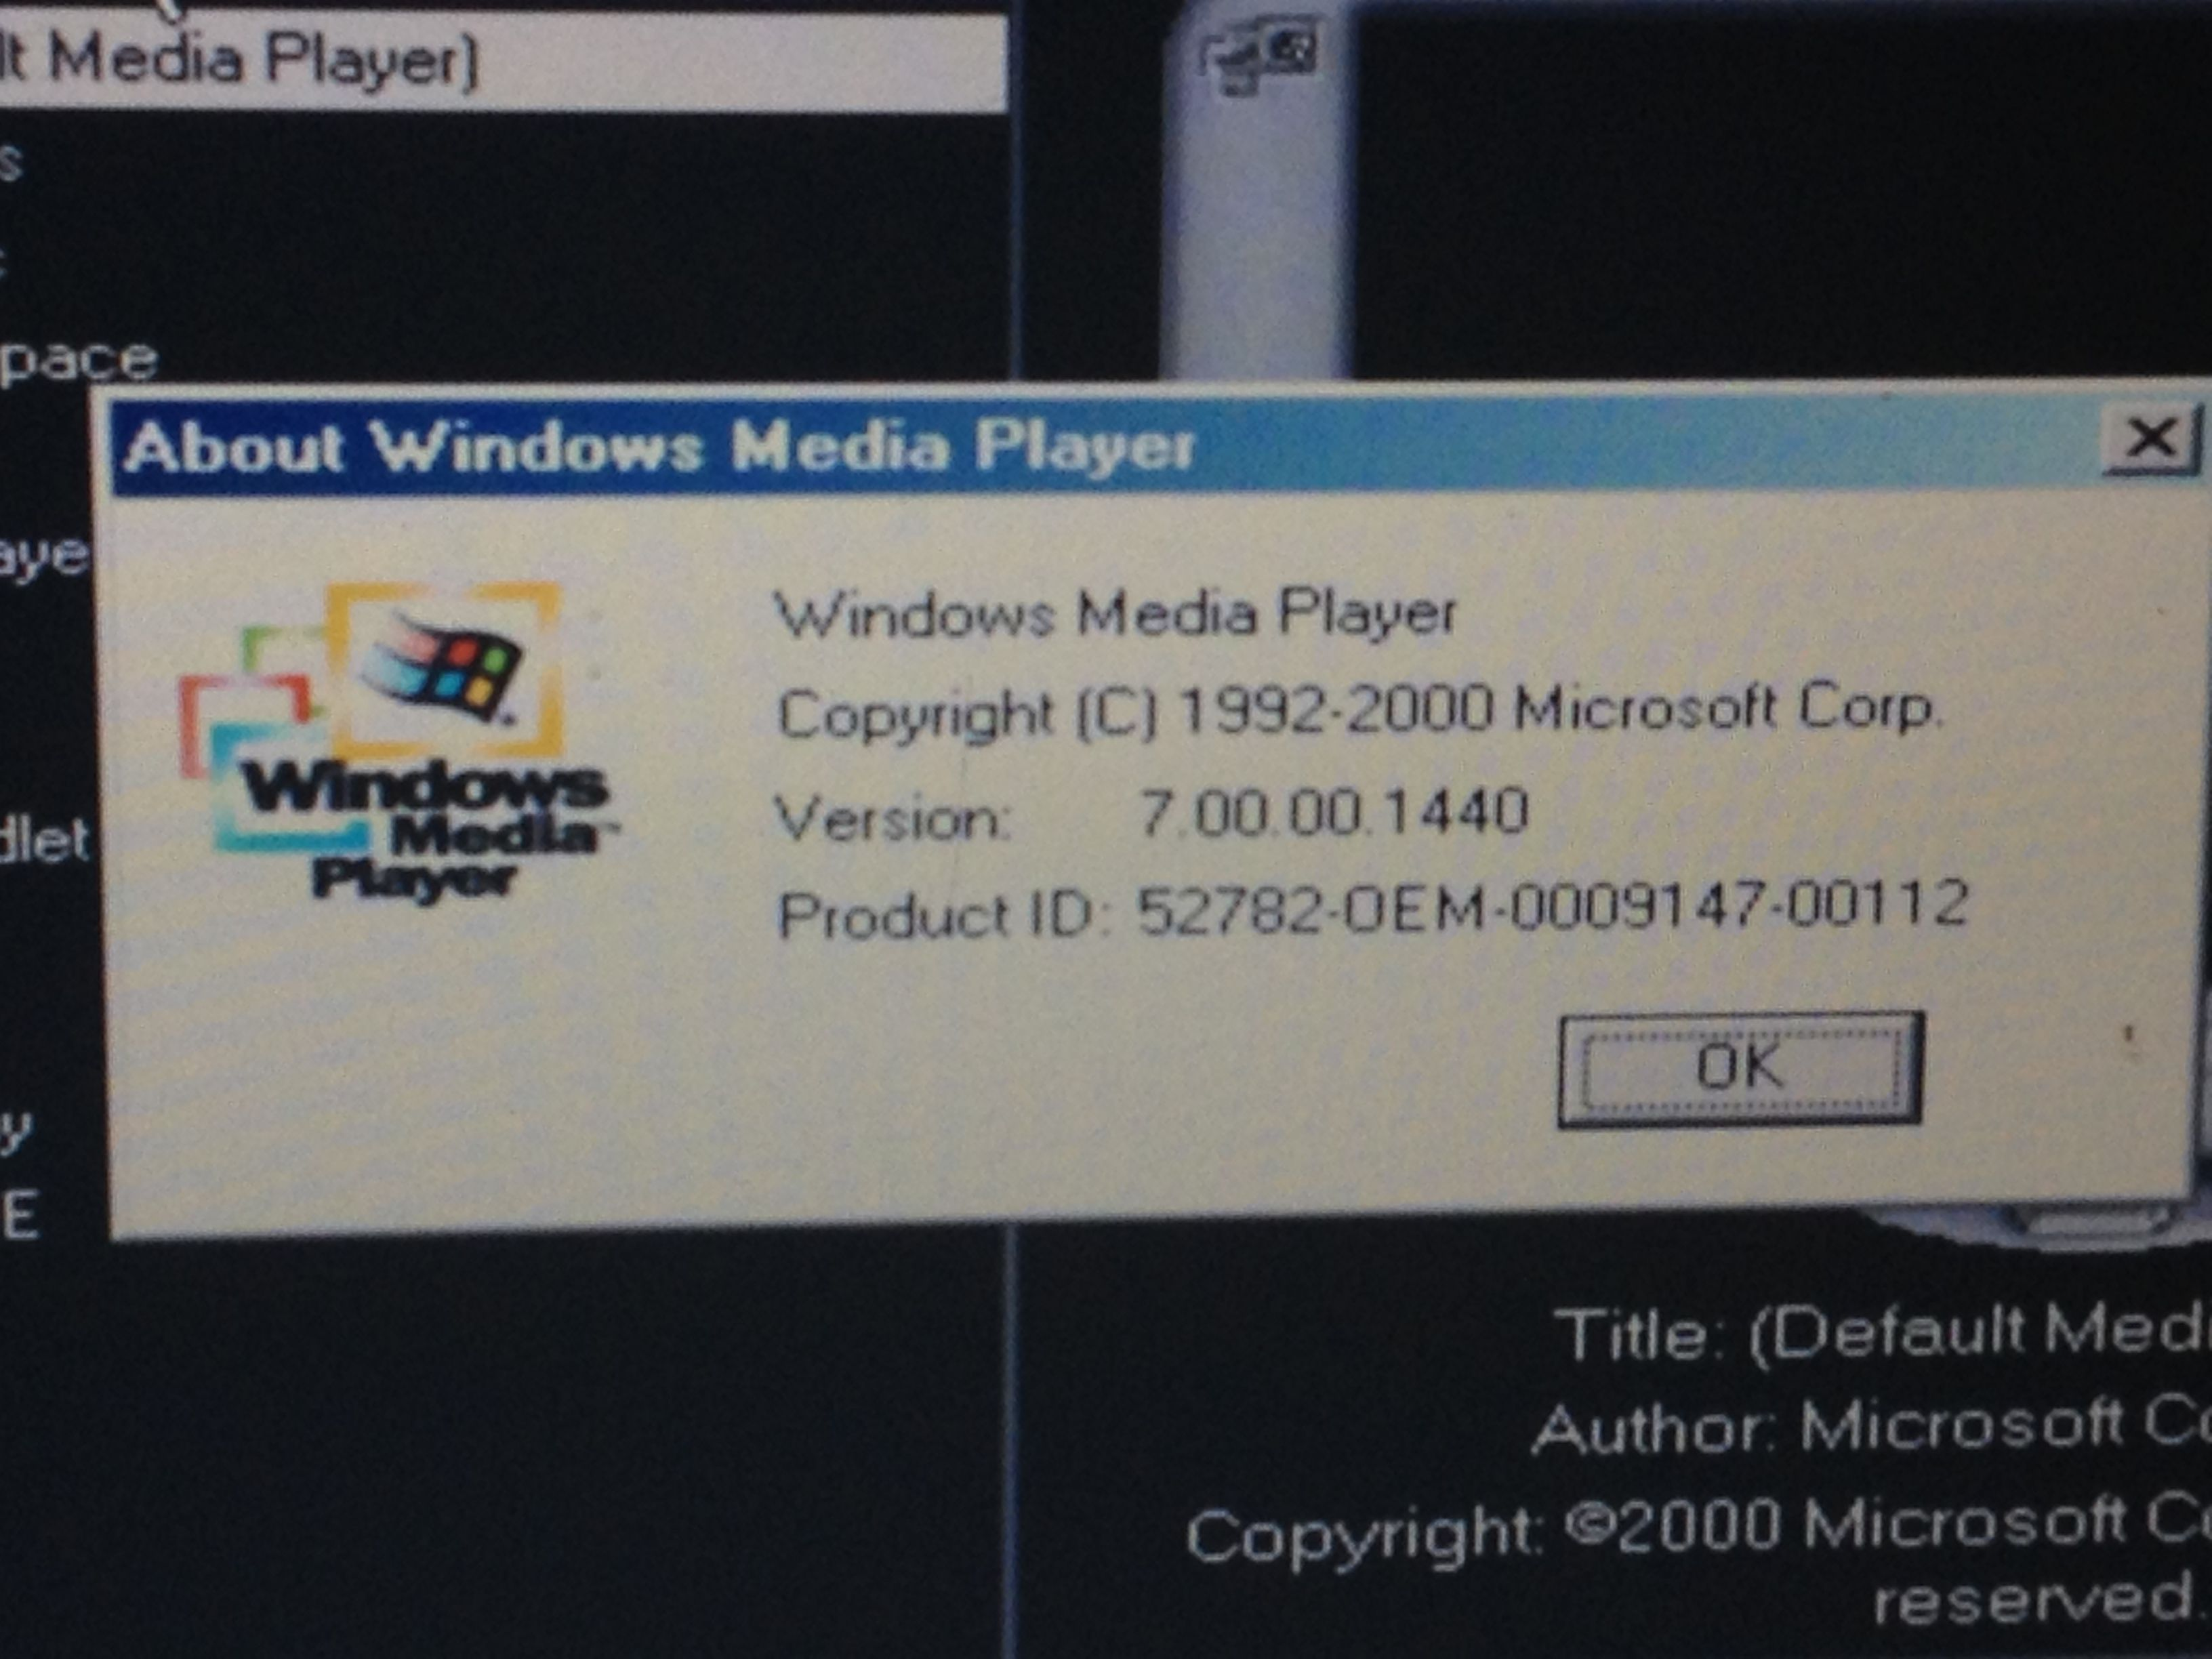 About Windows Media Player | Windows Media Player 7 | Cards against